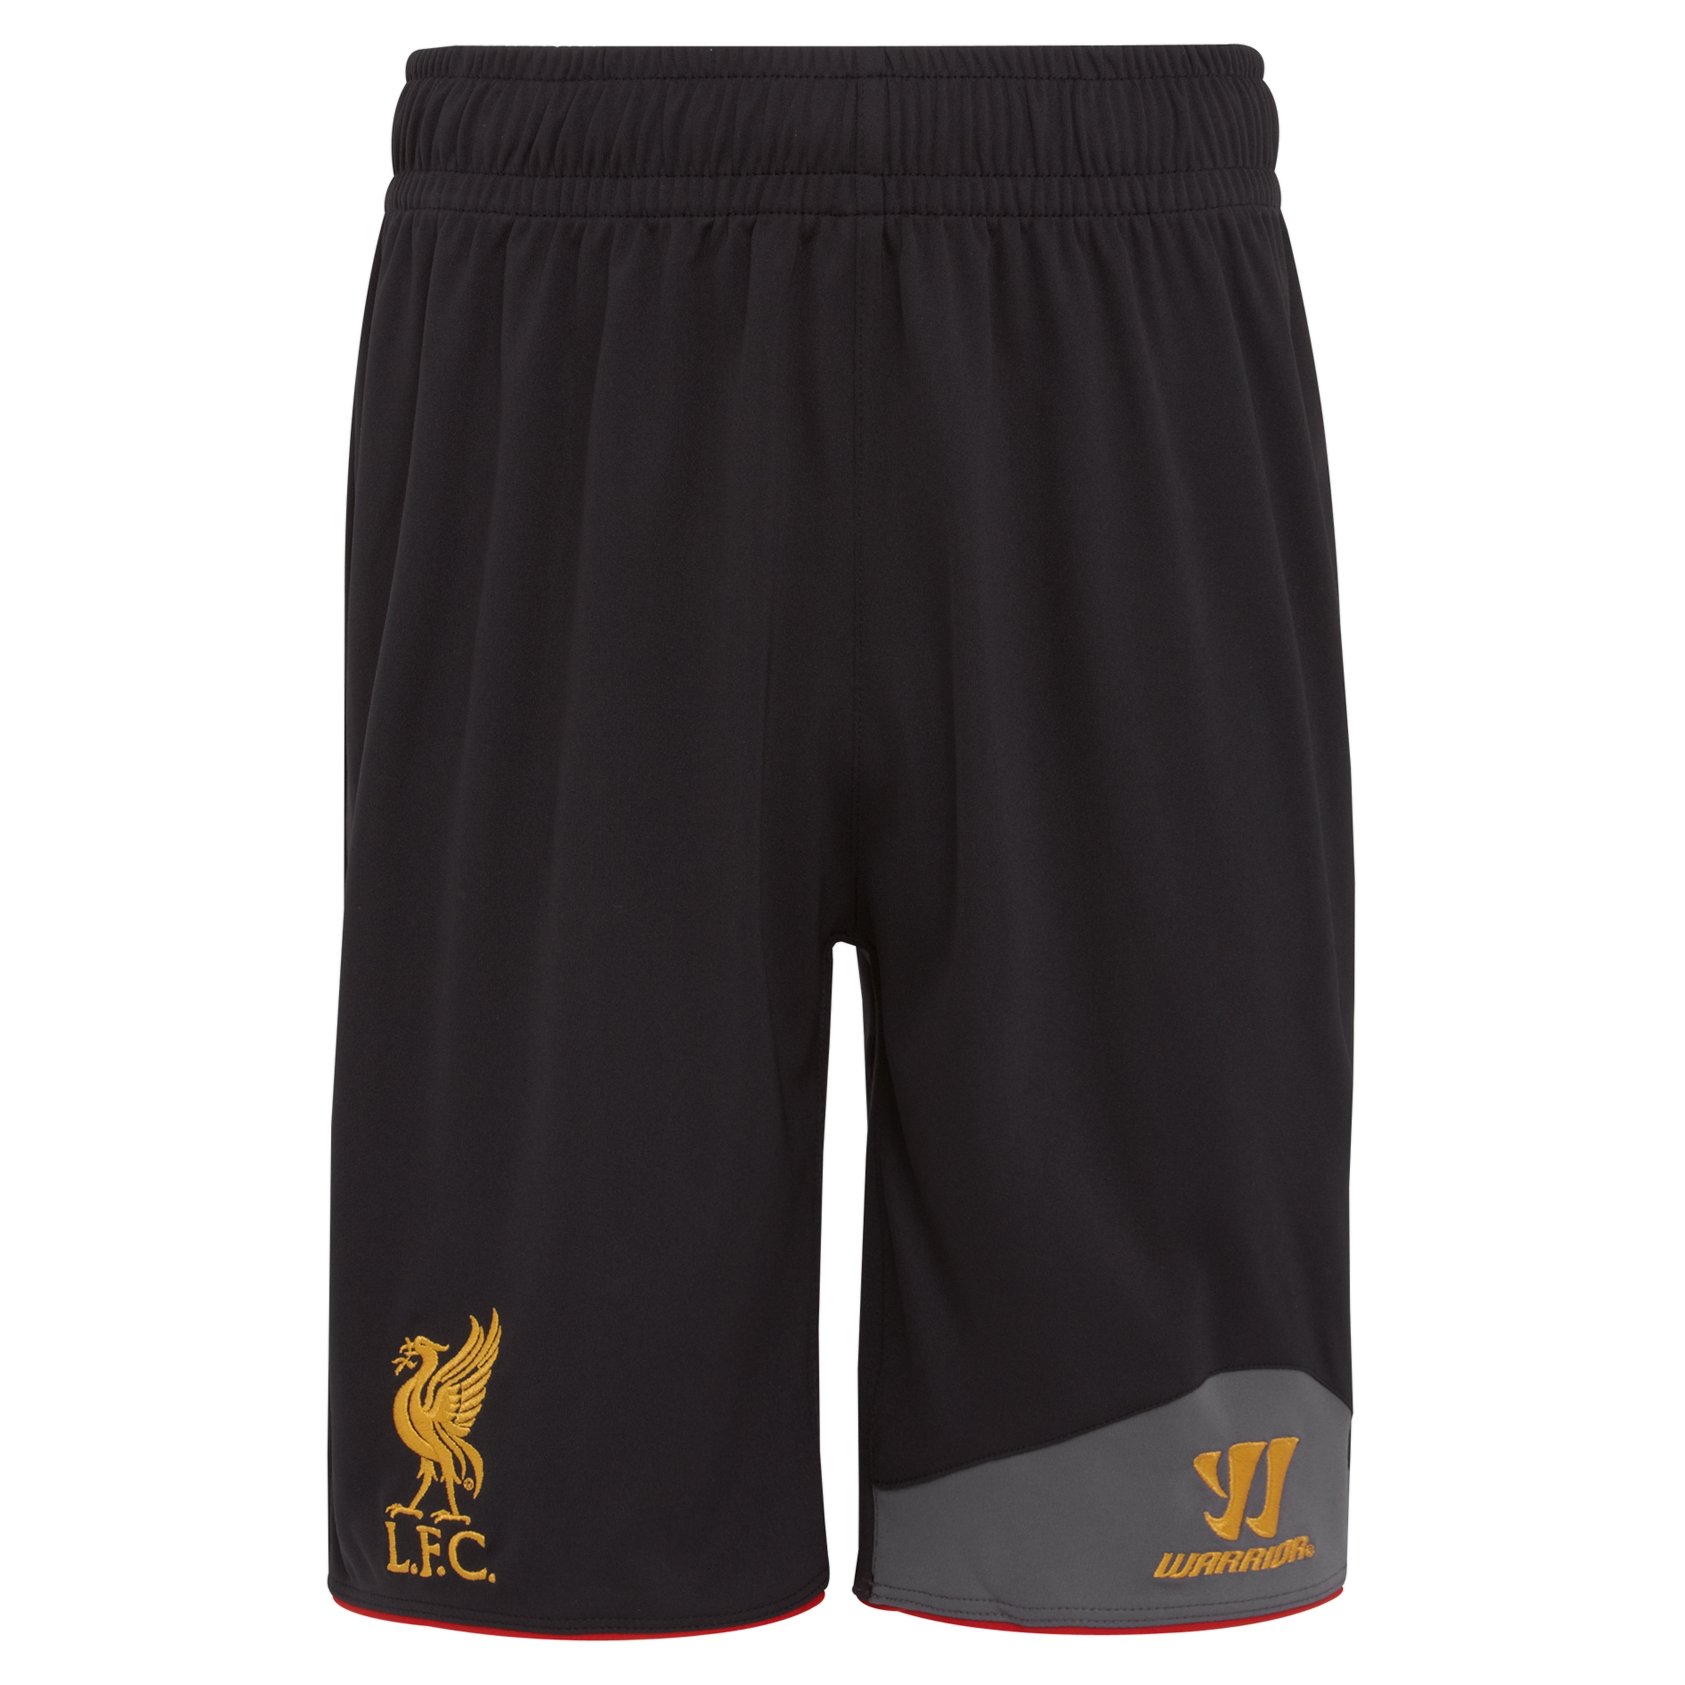 Liverpool Away Short 2012/13